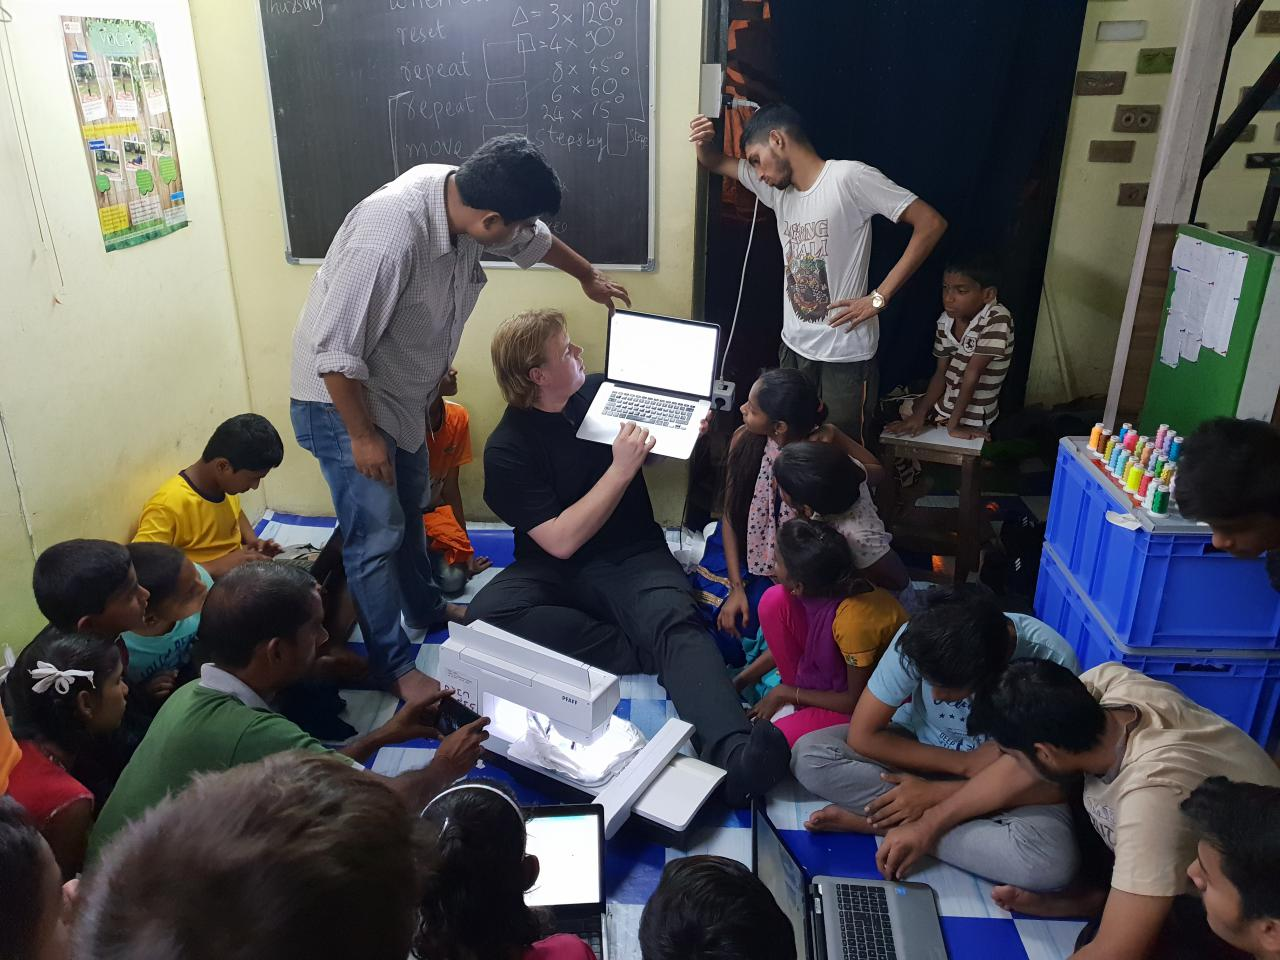 Participants of the »Digital Embroidery« Workshop at the Dr. Bhau Daji Lad Museum in Mumbai